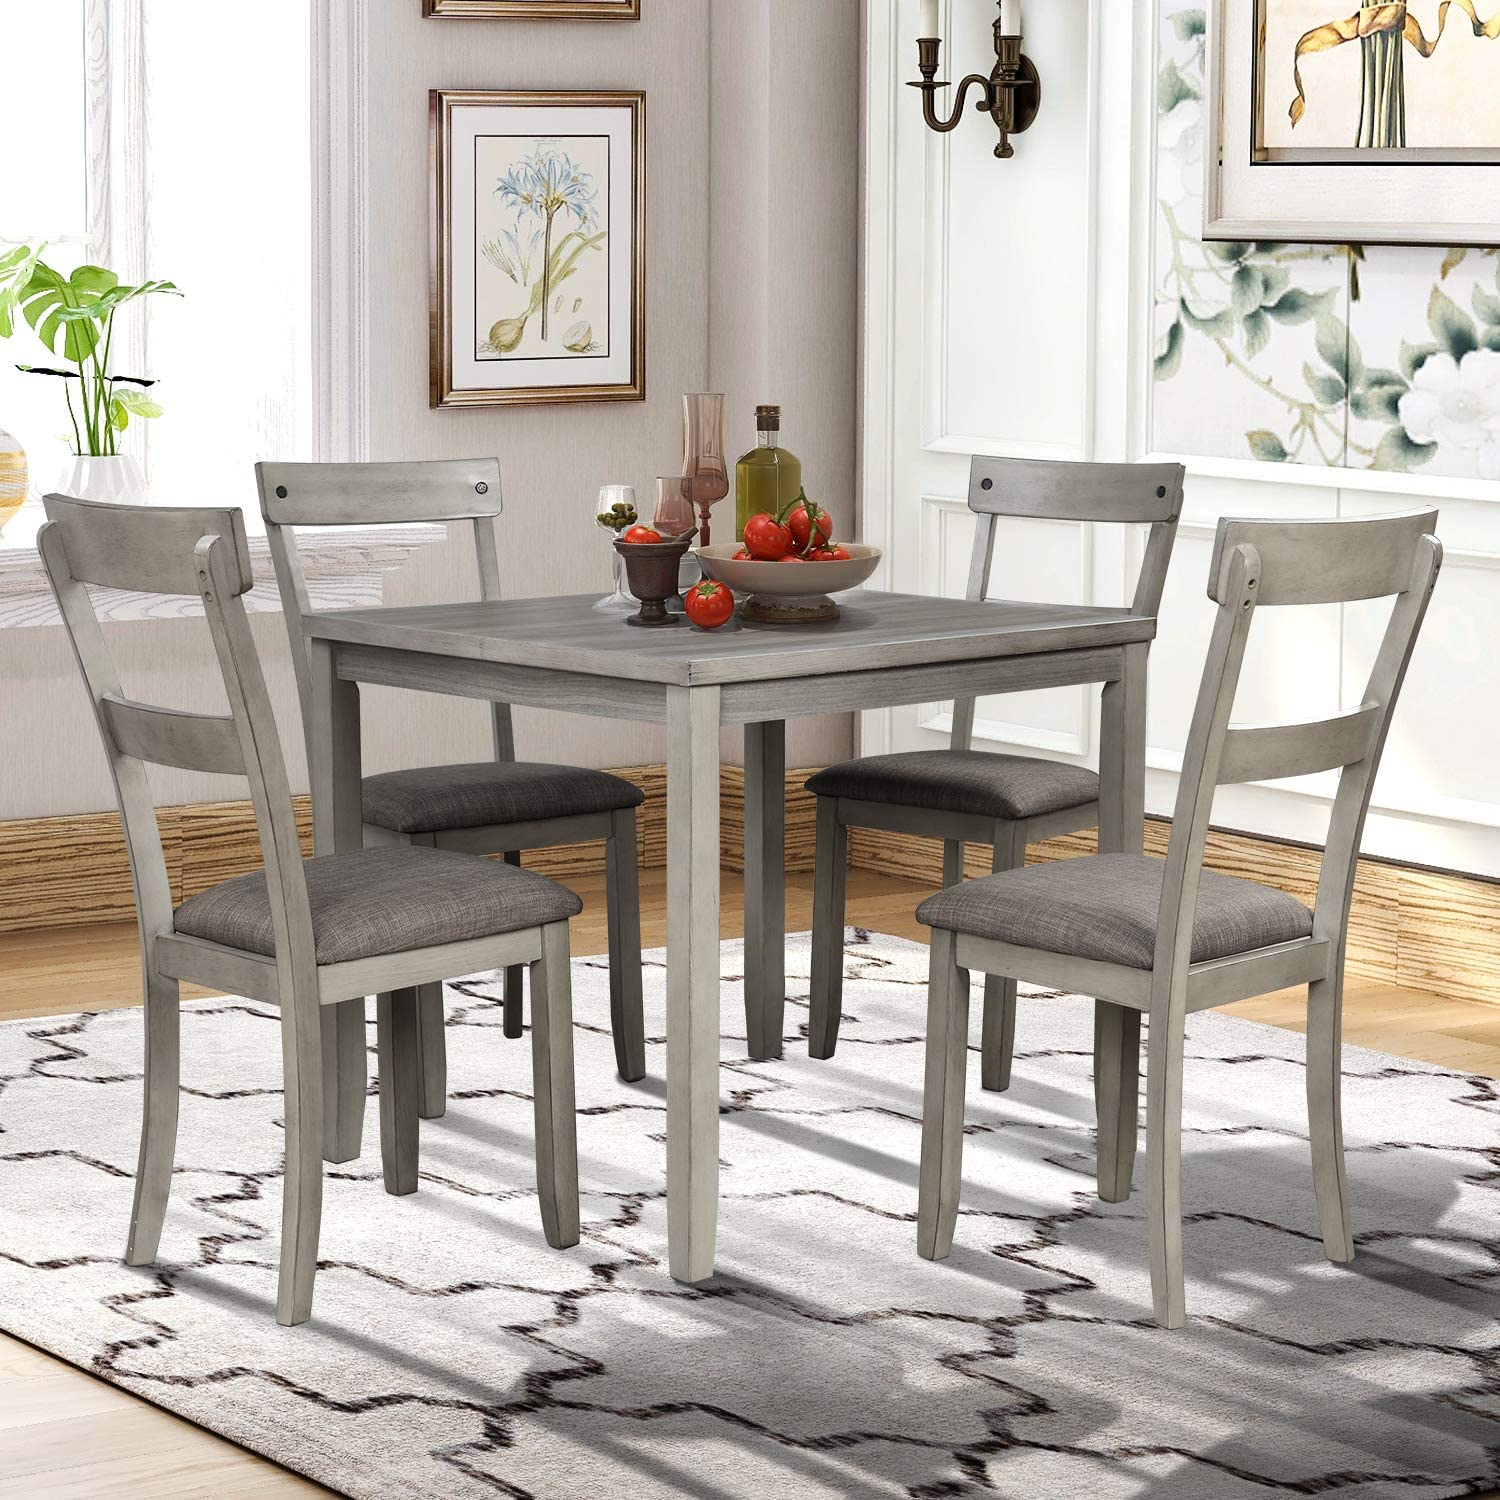 Amazon Com P Purlove 5 Piece Dining Table Set Industrial Wood Kitchen Table And 4 Padded Chairs 5 Piece Dining Room Set For Small Place Kitchen Dining Room Light Gray Table Chair Sets